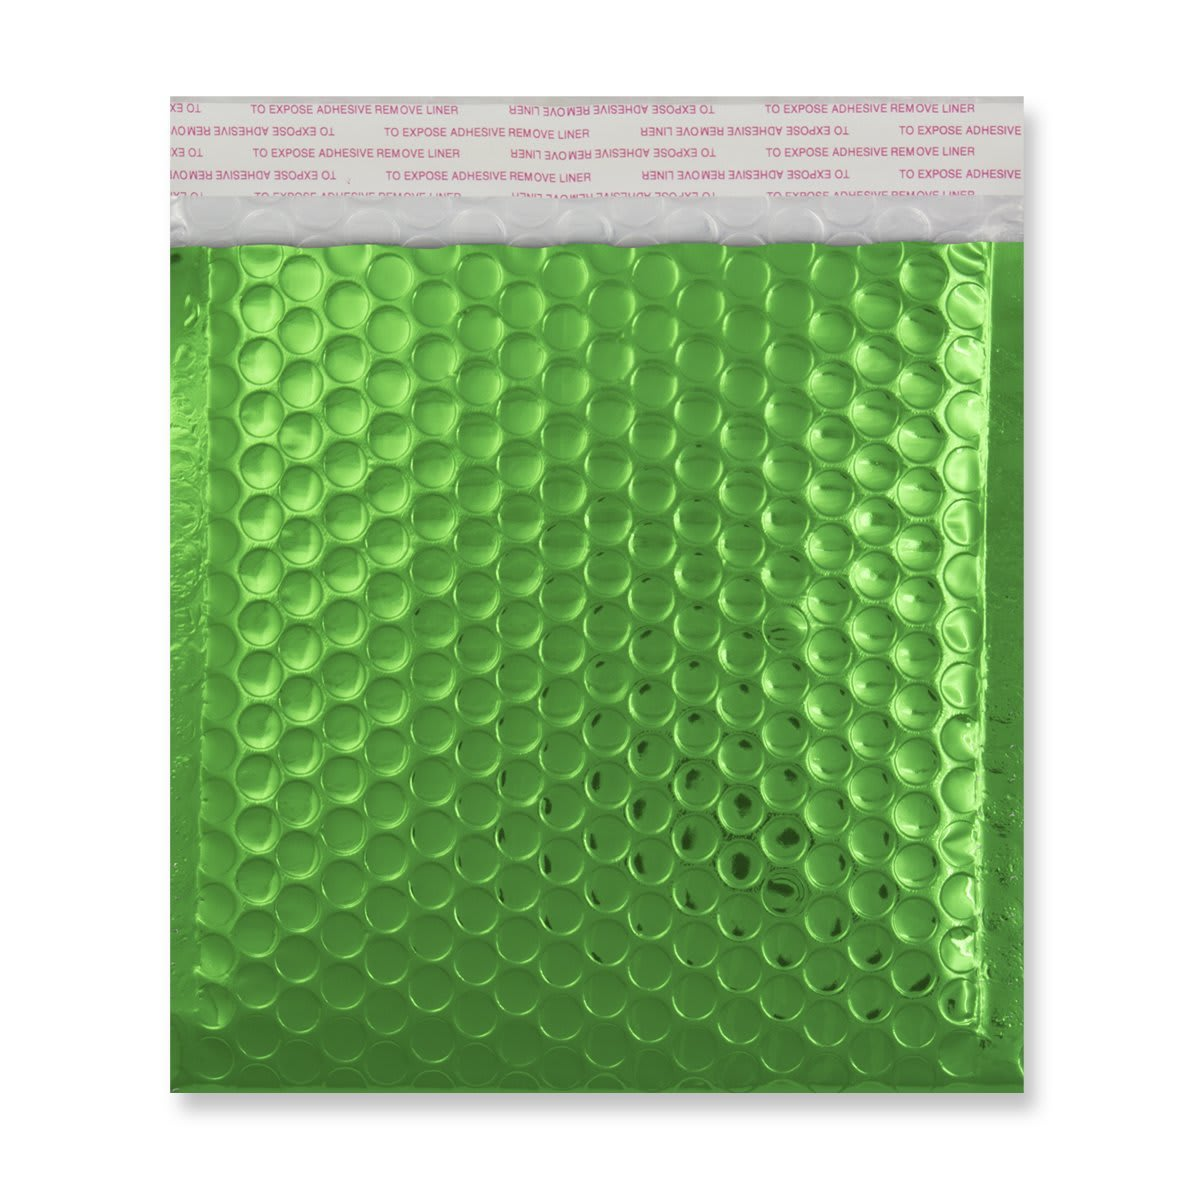 165MM SQUARE GLOSS METALLIC GREEN PADDED ENVELOPES